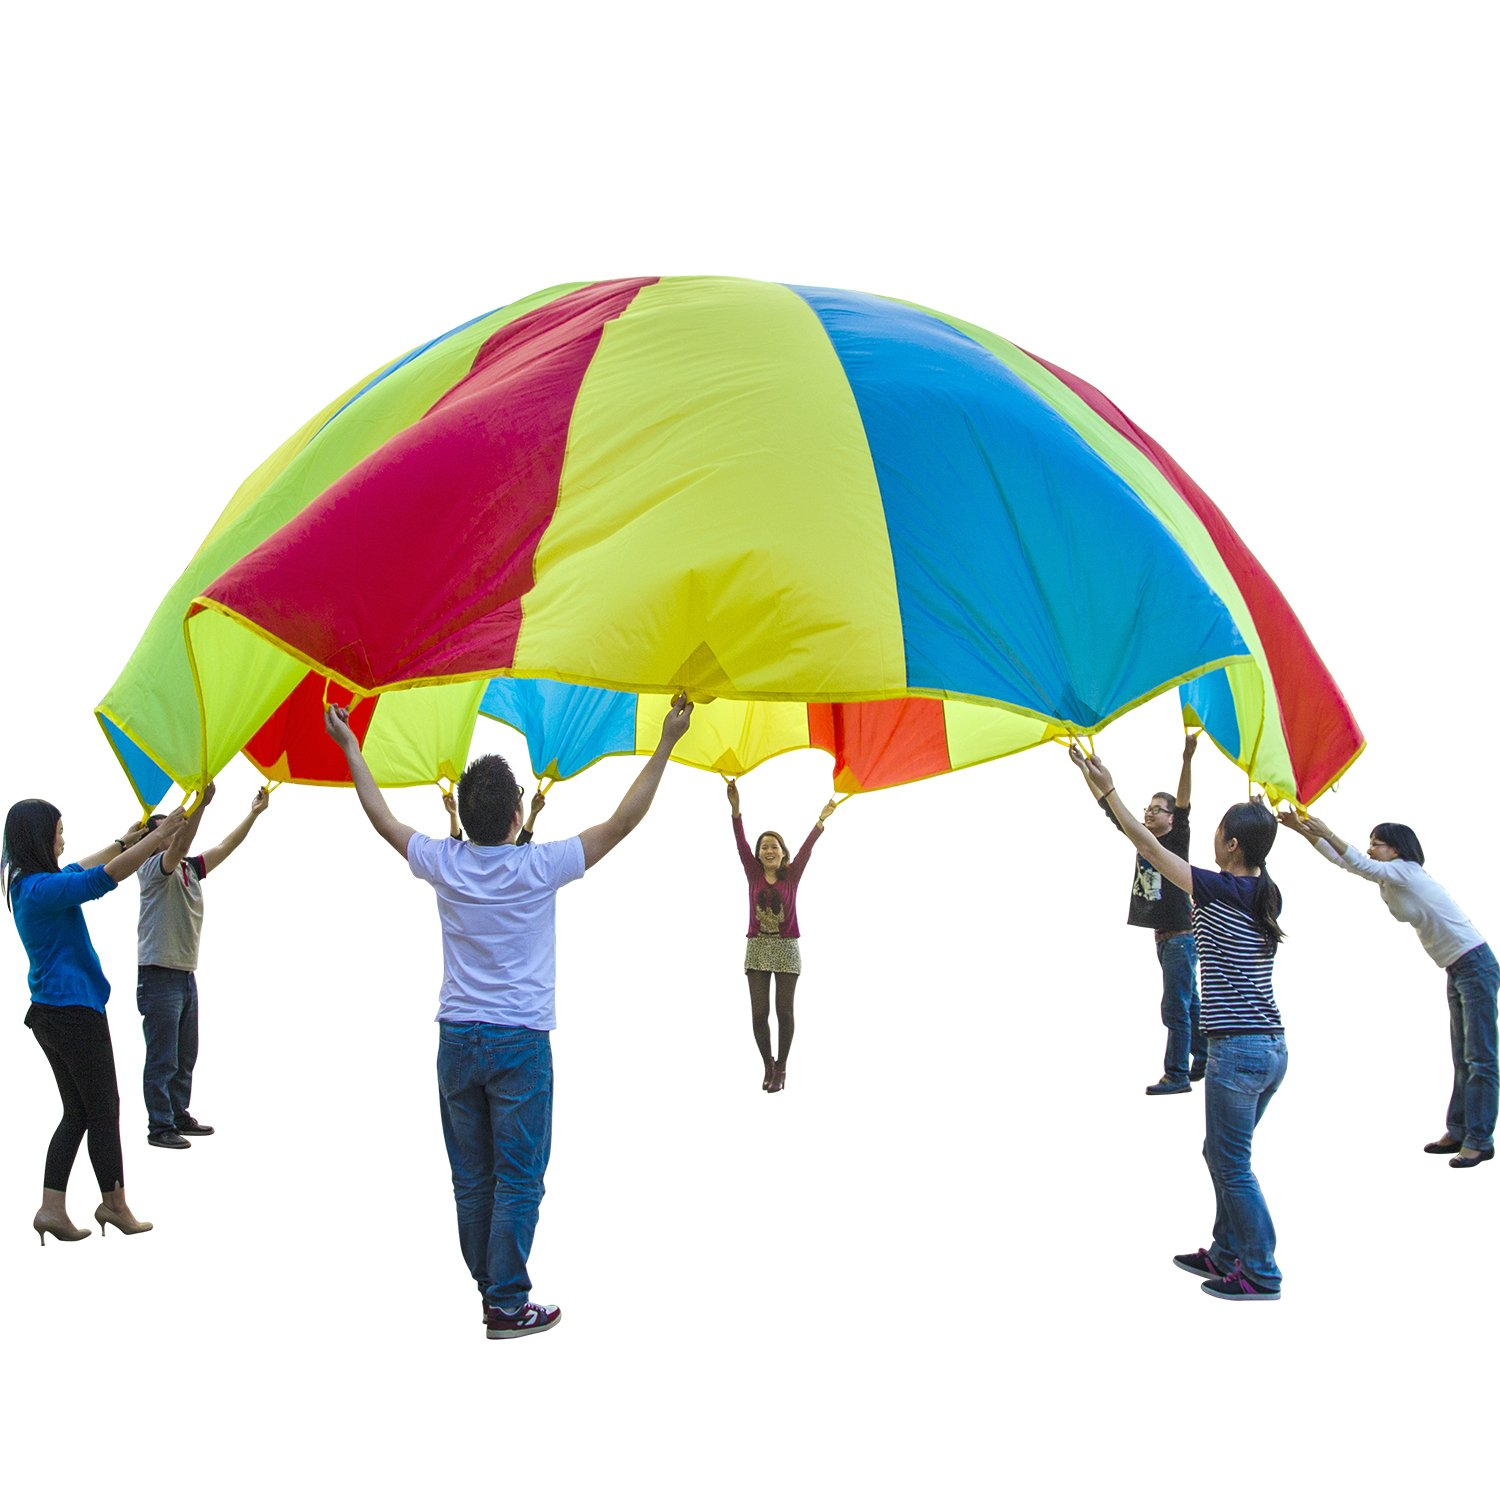 Sonyabecca Parachute, Play Parachute 20ft with 16 Handles for Kids Cooperation Group Play by Sonyabecca (Image #2)